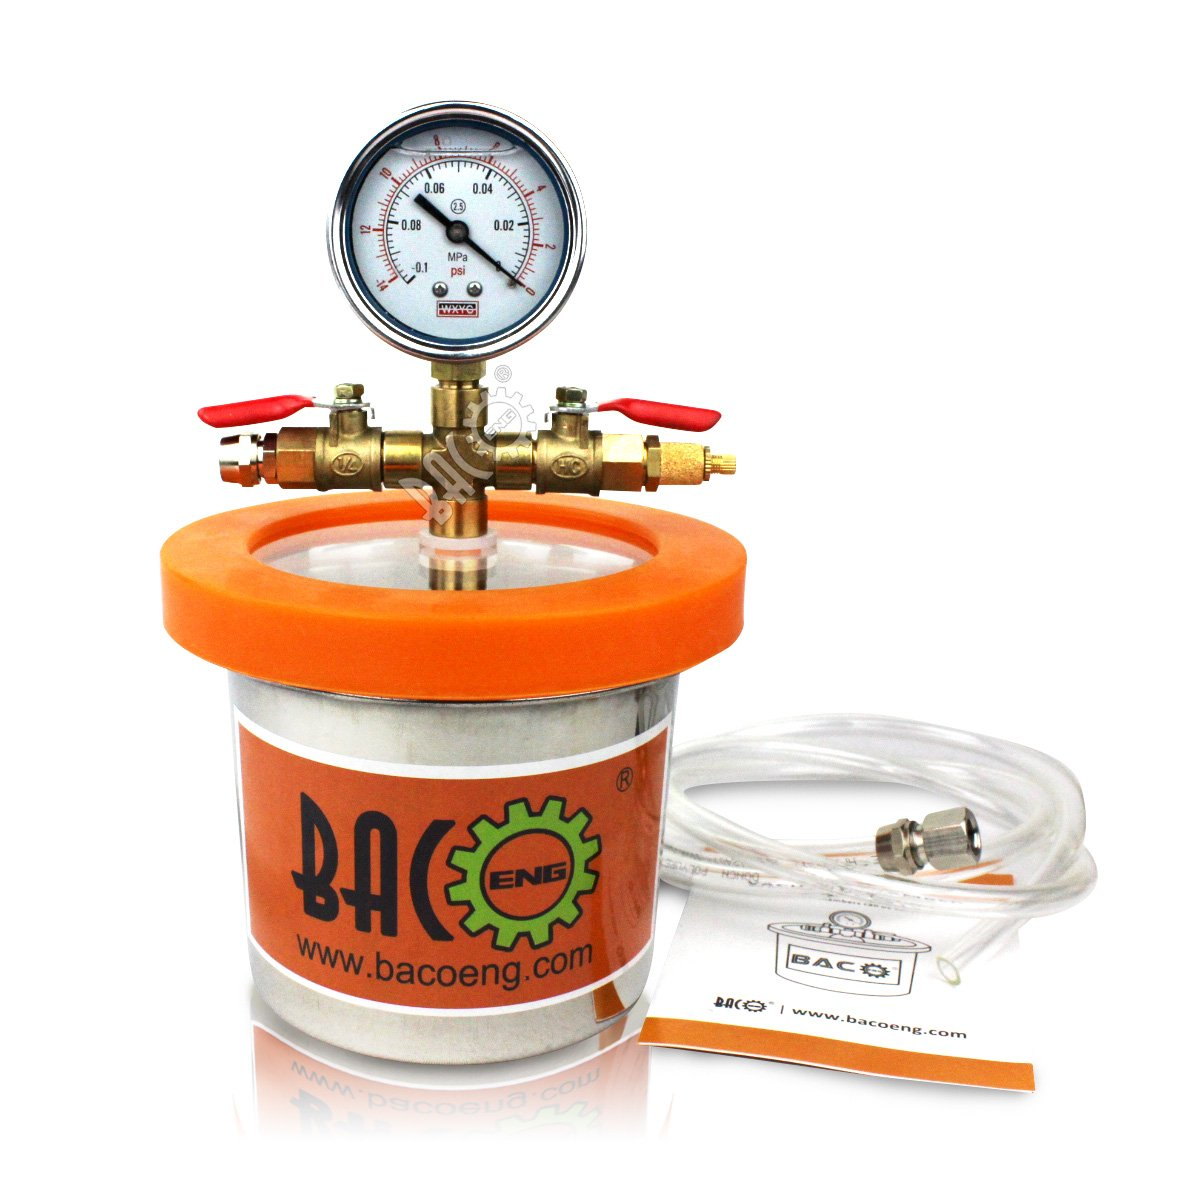 BACOENG Universal Vacuum Chamber Series: Standard 1.2 Quart by BACOENG